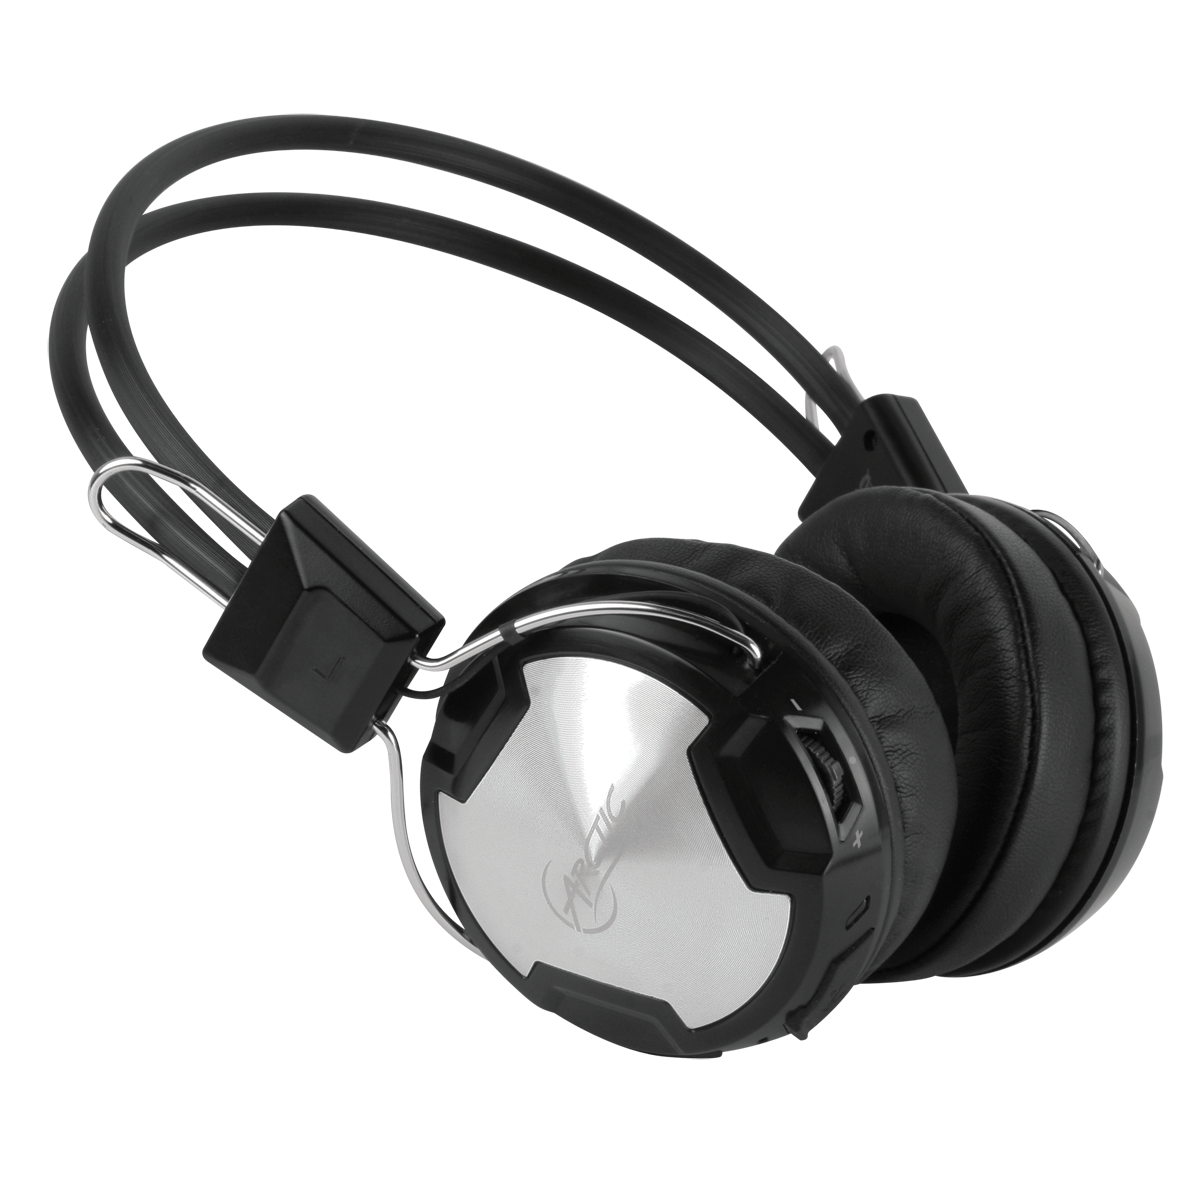 Bluetooth 3.0 Headphones with In-Line-Microfone ARCTIC P402 BT